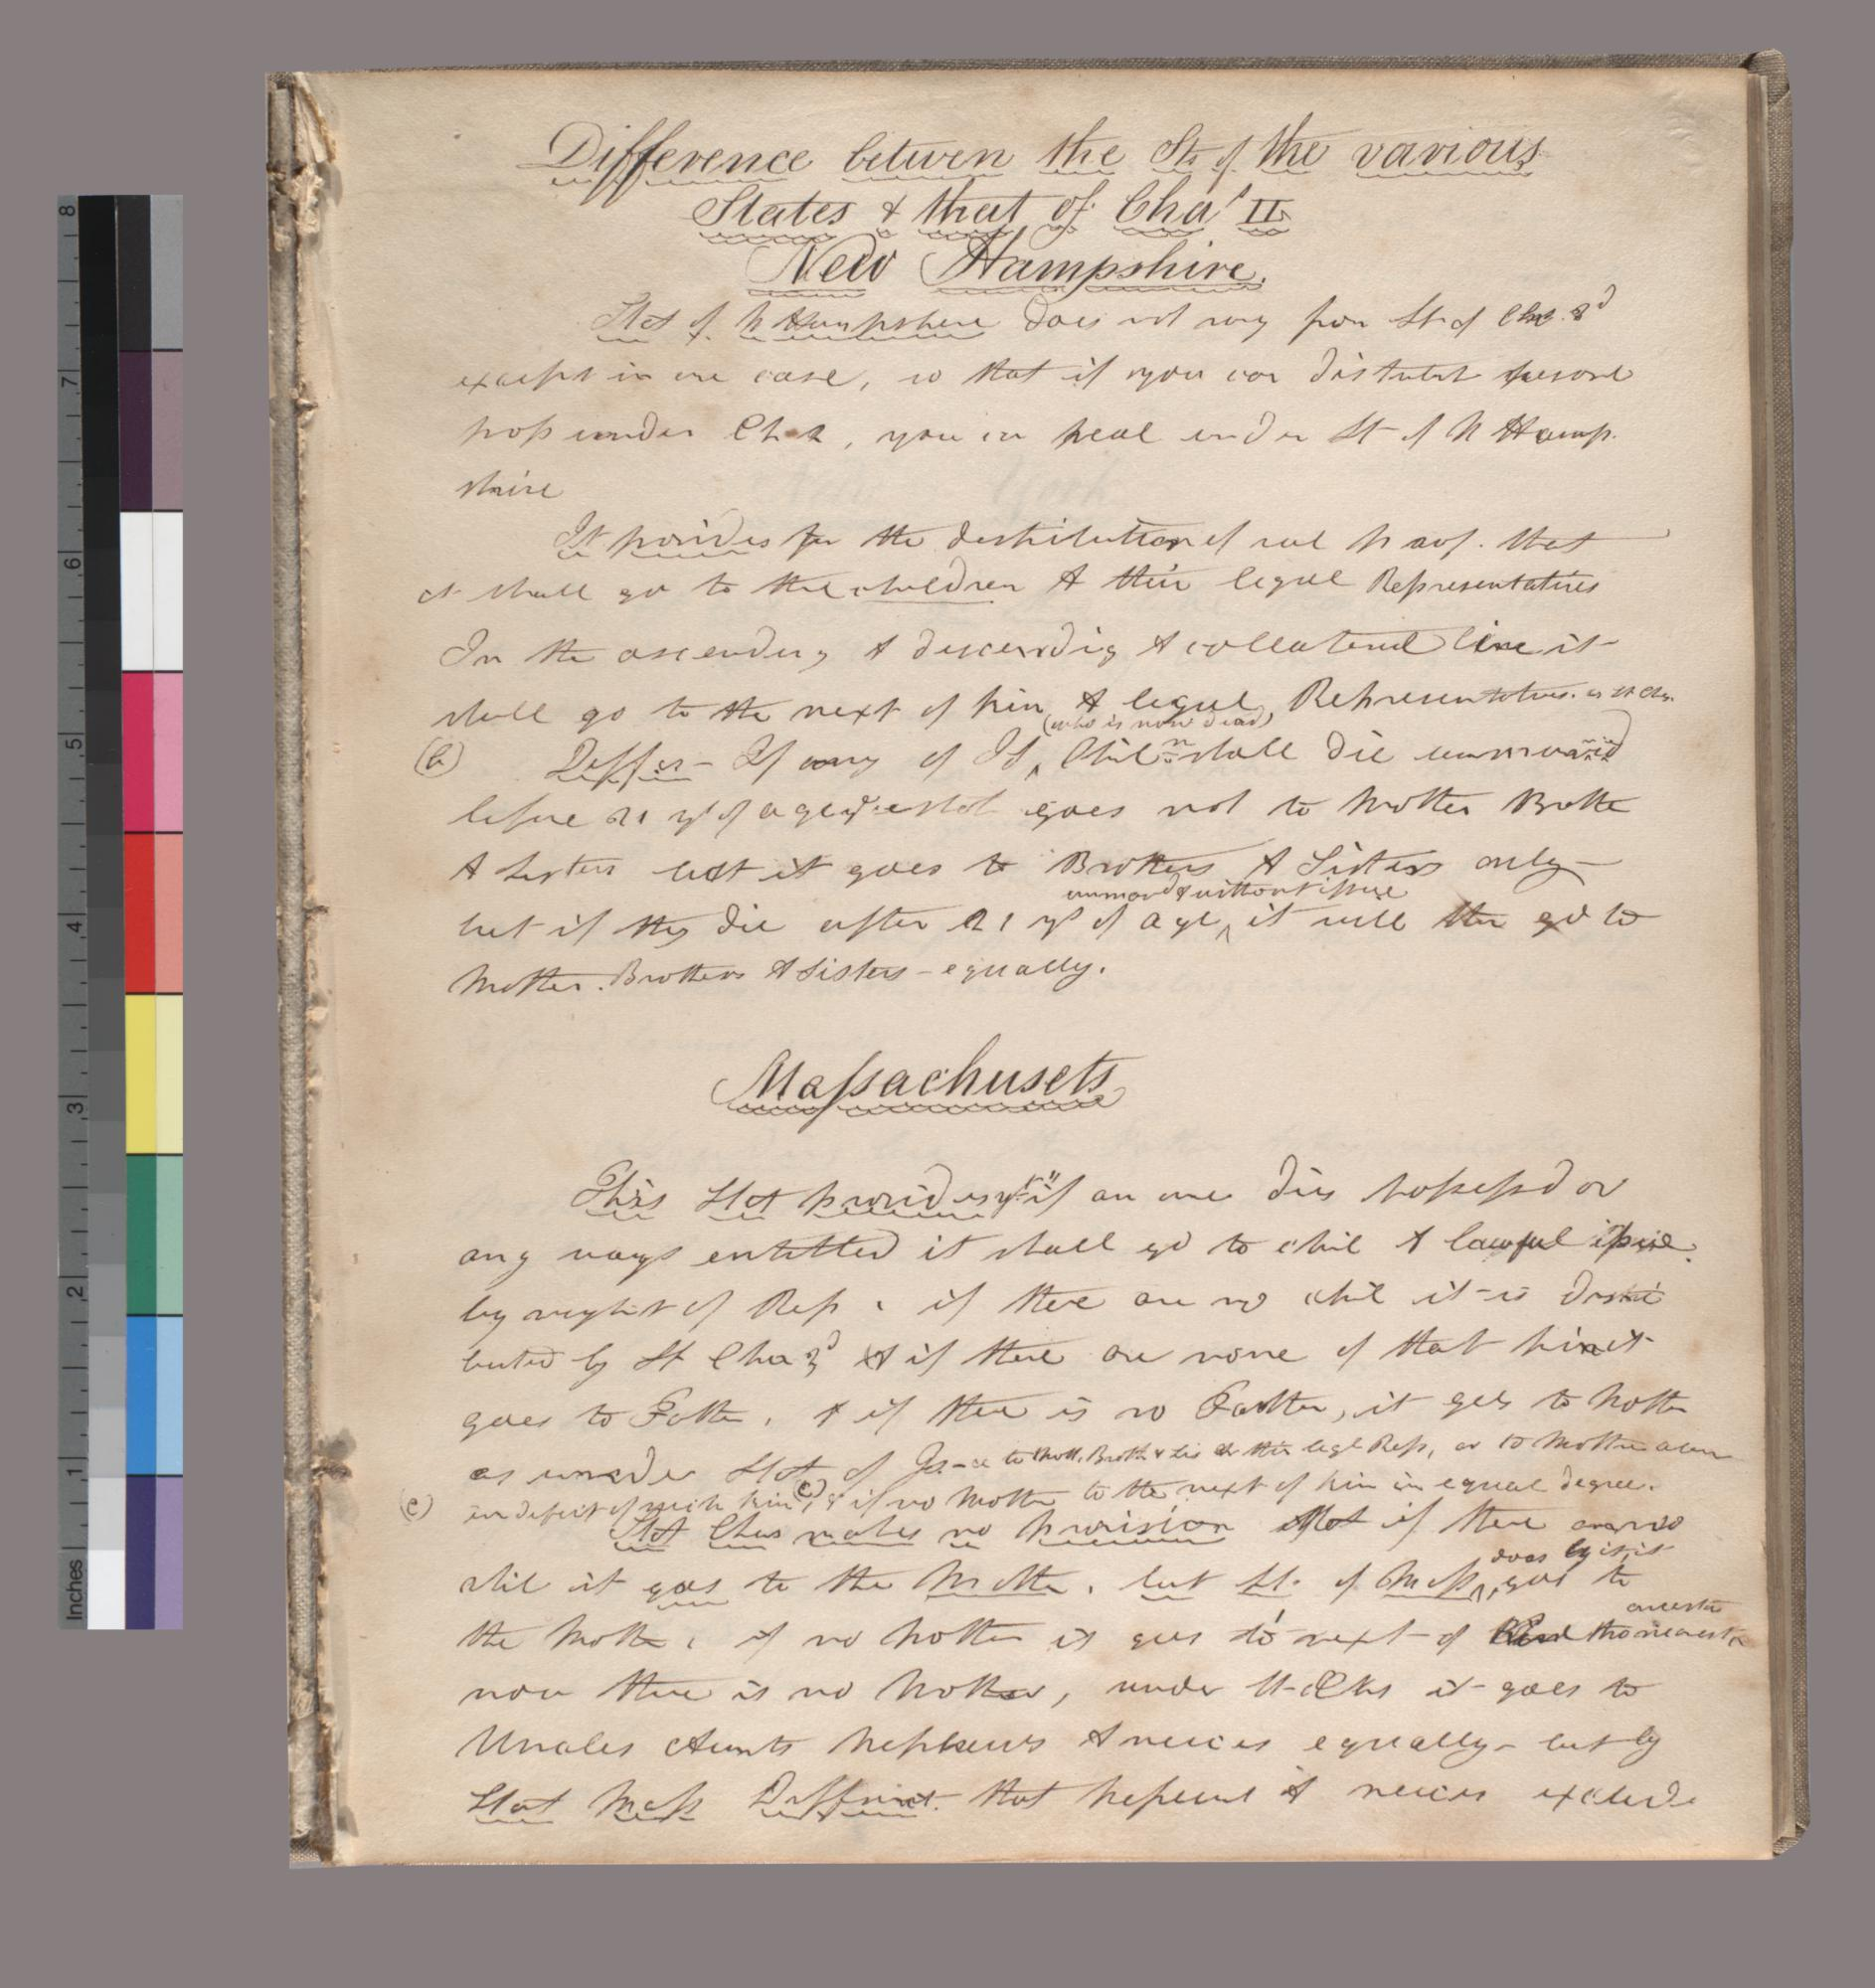 Litchfield notebook of law lecture courses